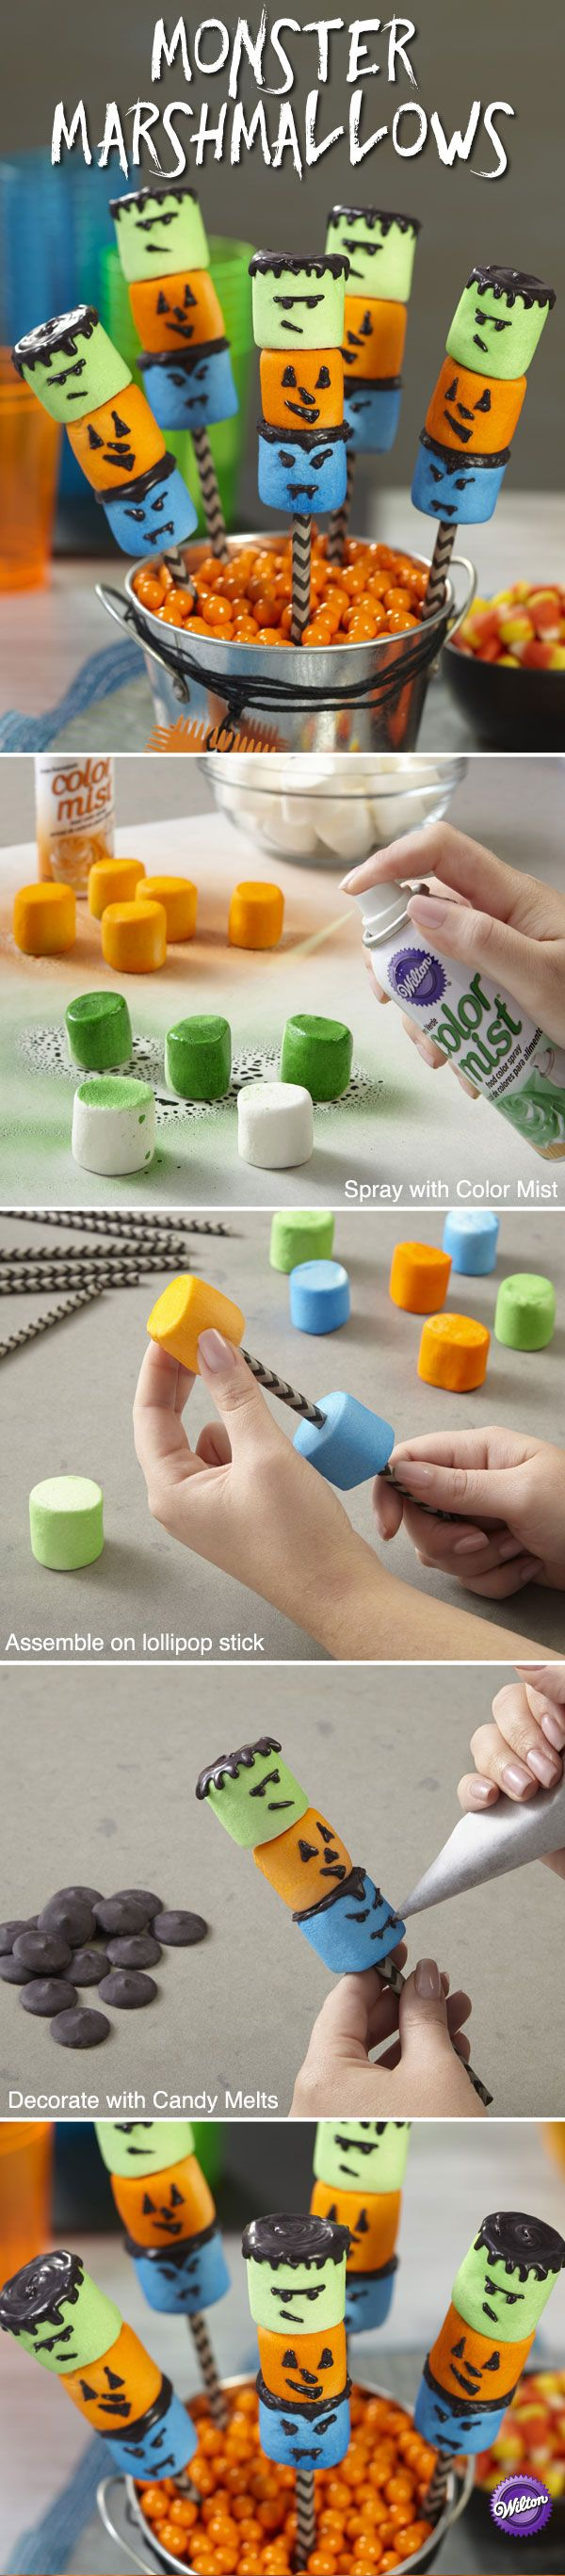 They look tough-as-nails on the outside, but they're softies underneath because they're marshmallows! Complete the quick decorating with Color Mist Food Color Spray and Candy Melts Candy.